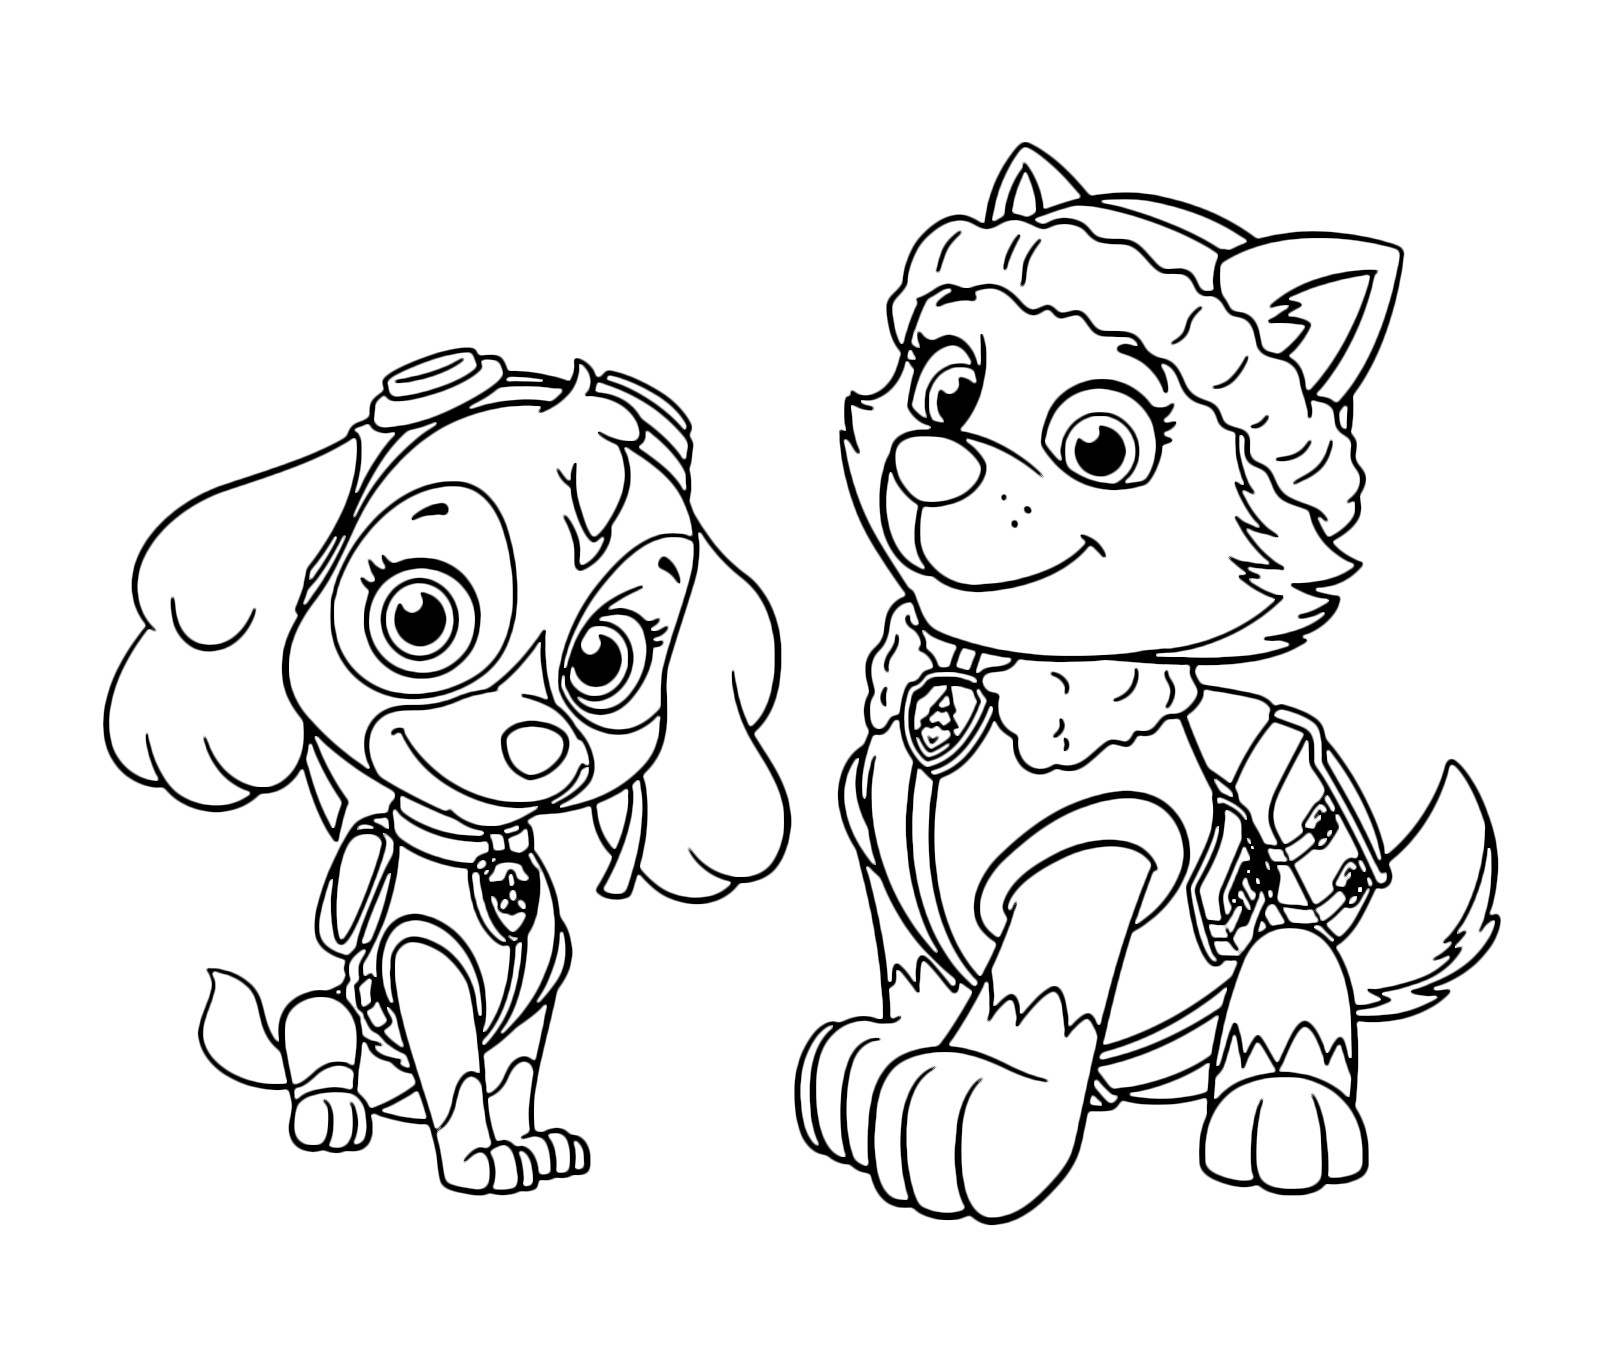 1600x1366 Cartoons Everest And Rocky Paw Patrol Coloring Pages For Kids